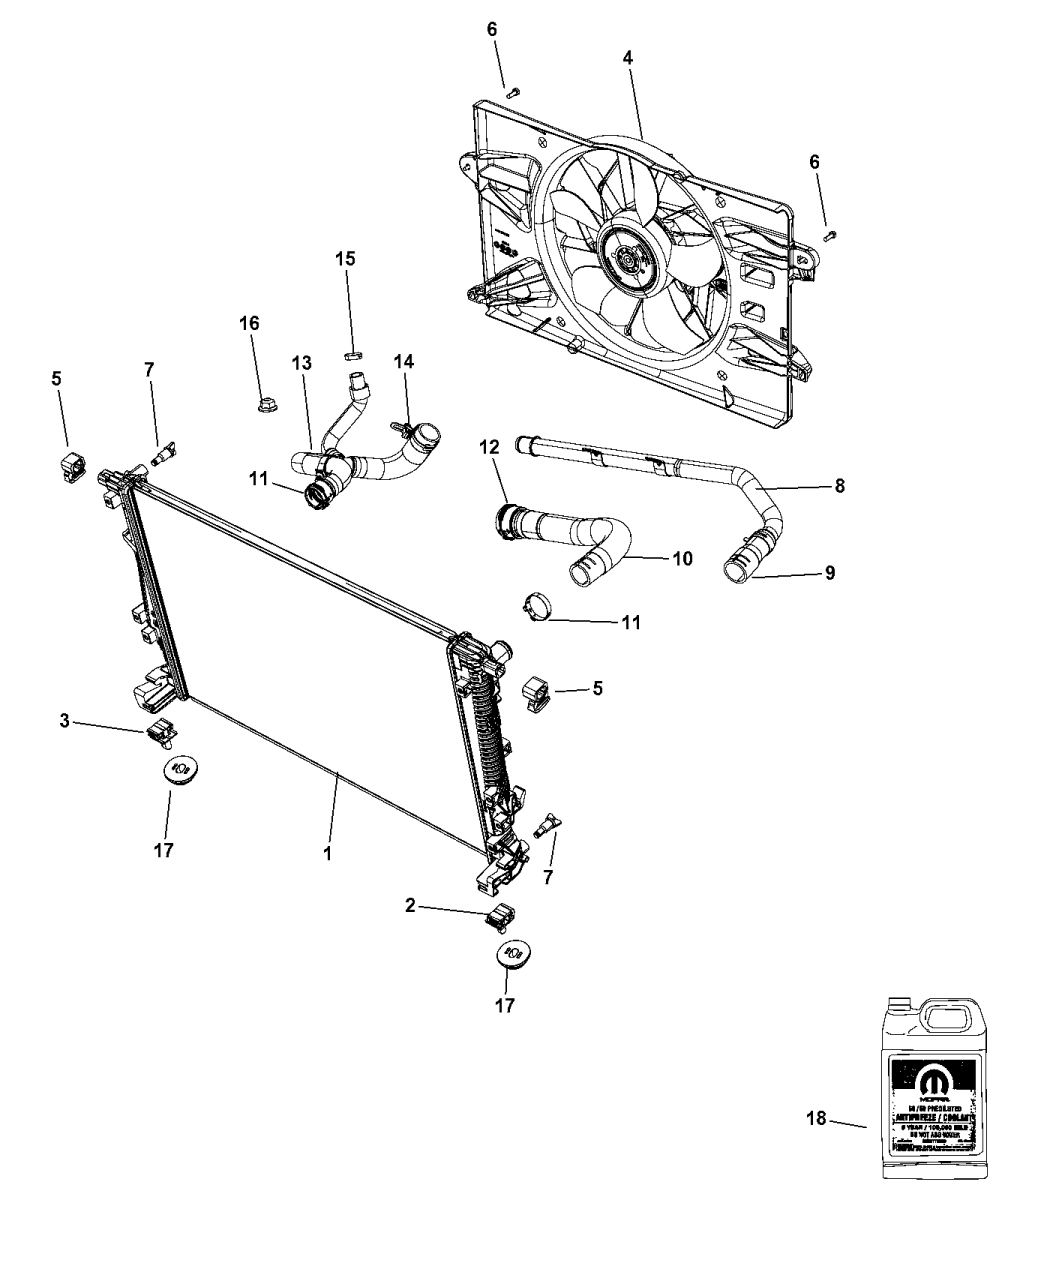 68193963aa Genuine Chrysler Hose Radiator Inlet Schematic 2015 200 Related Parts